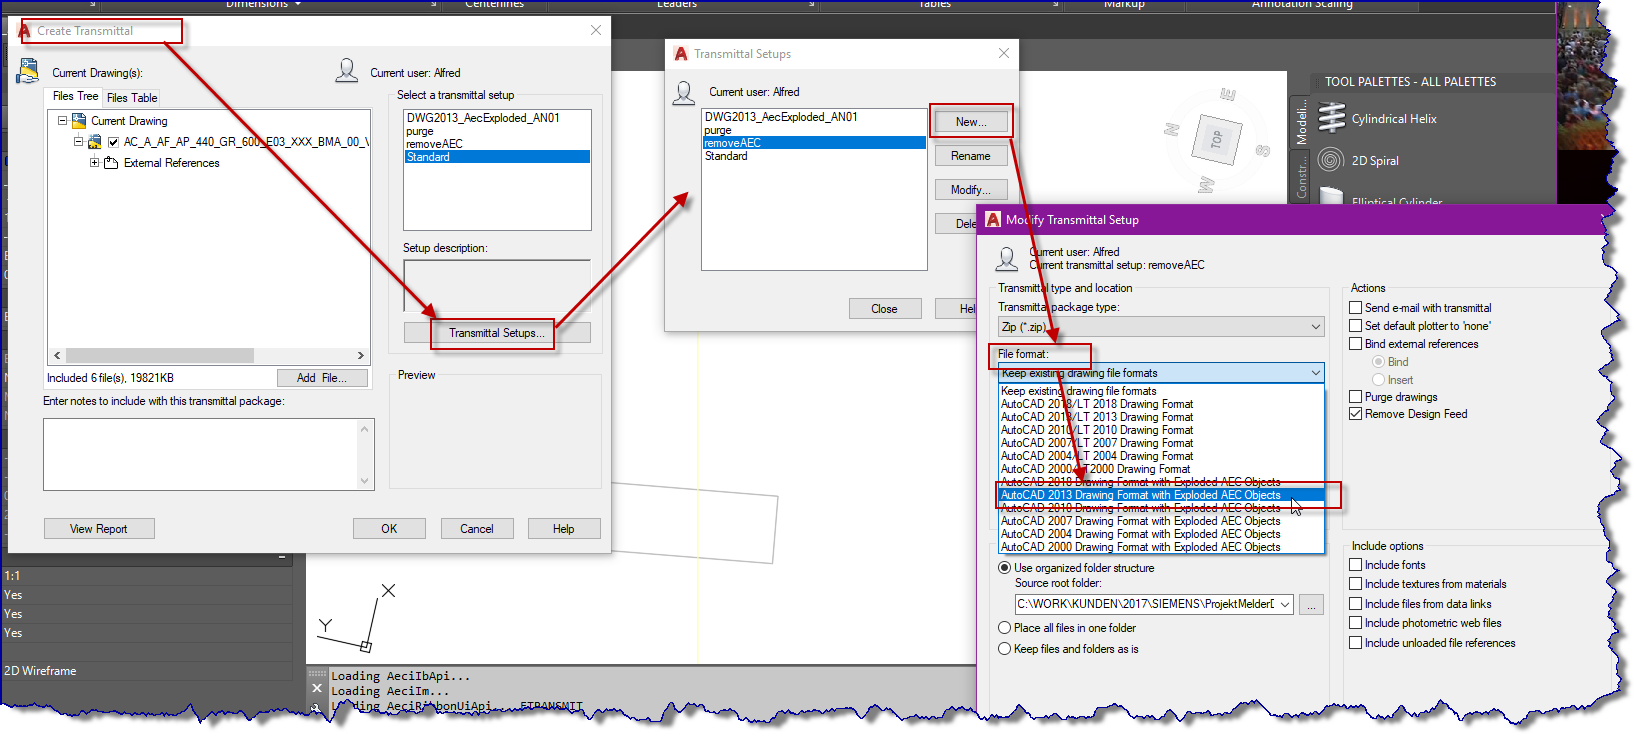 Autocad New Version To Old Version Converter Online - Autocad